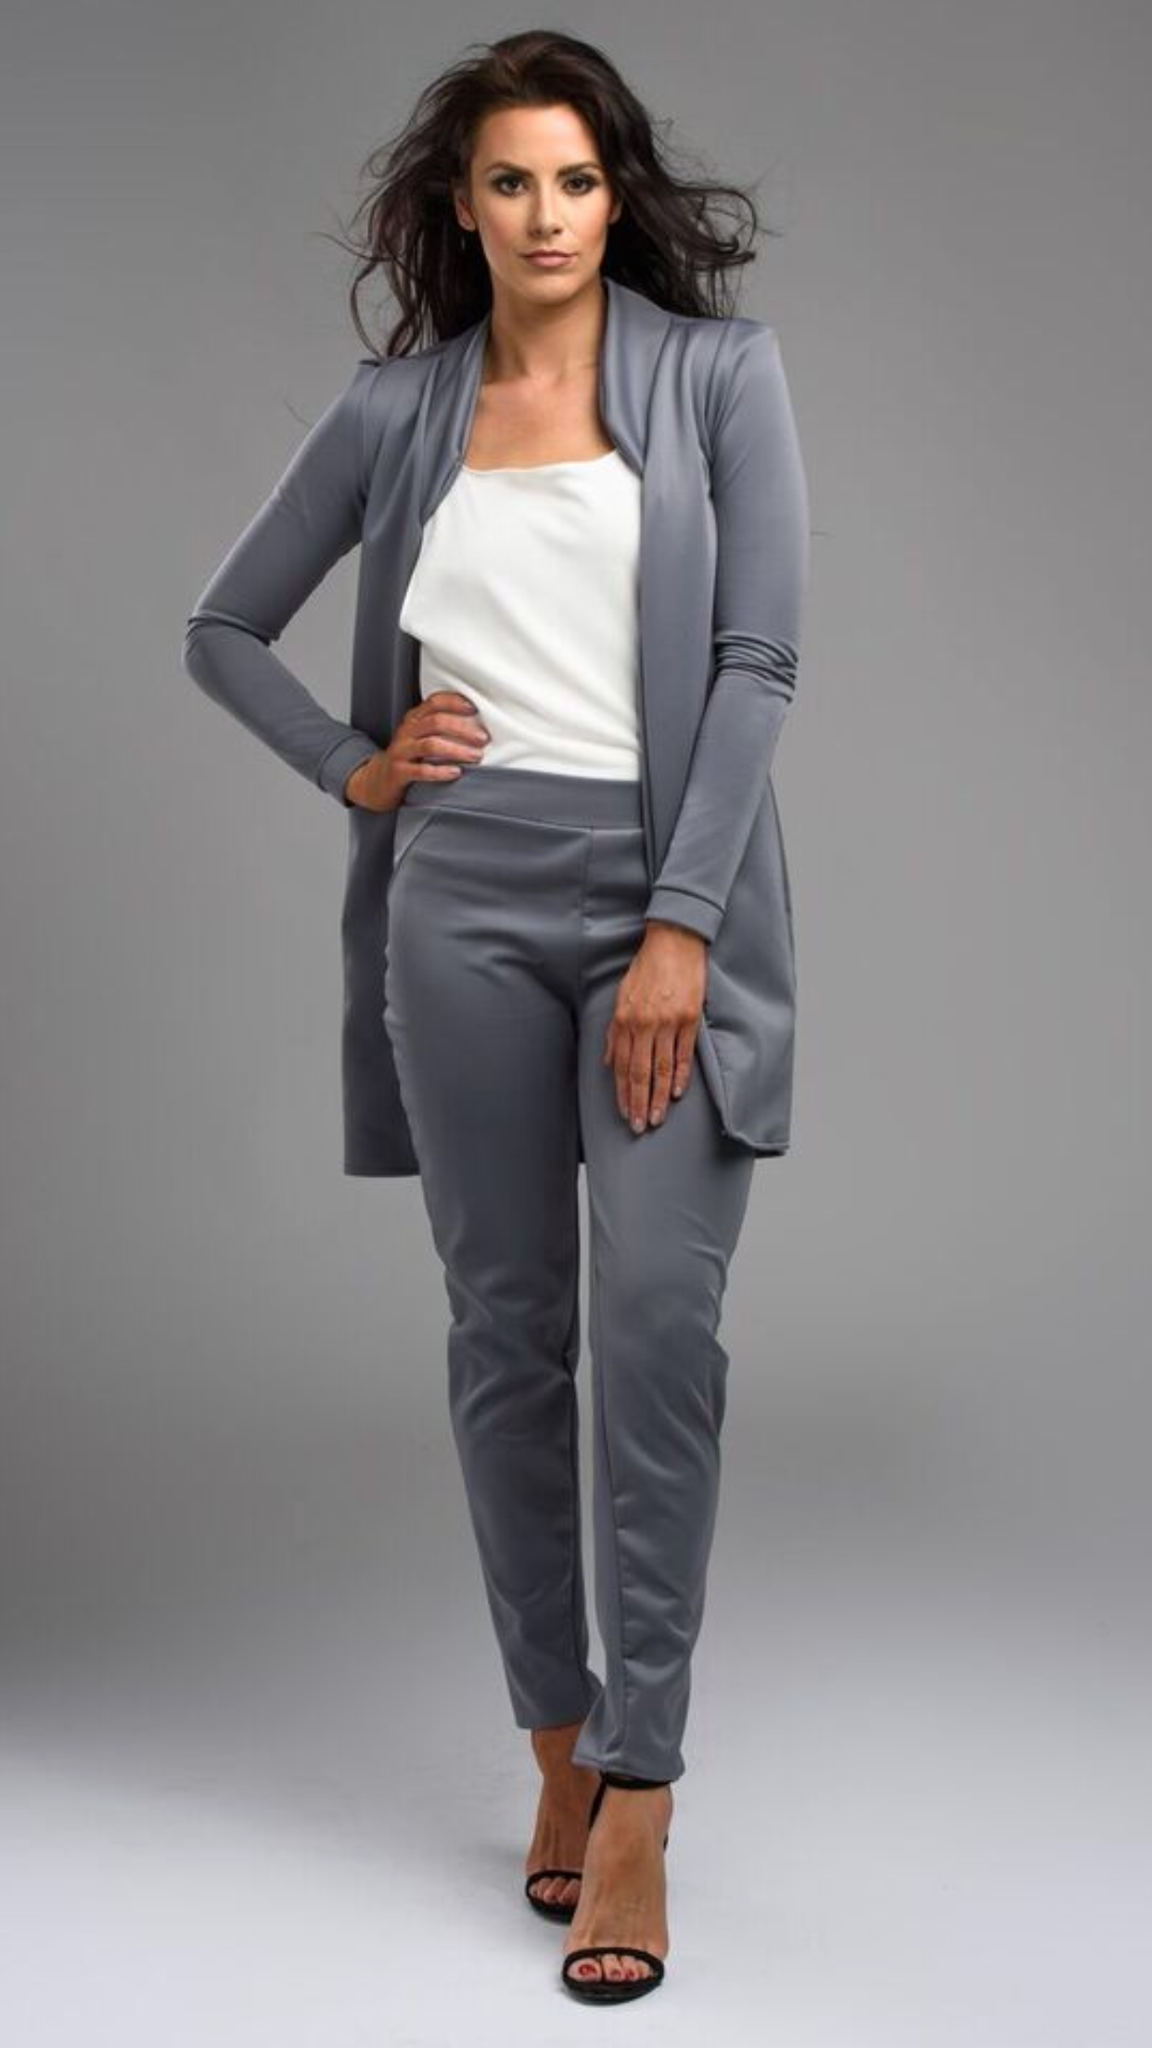 Jessica Cunningham Grey Trouser suit Slim Fit 3/4 Length Jacket